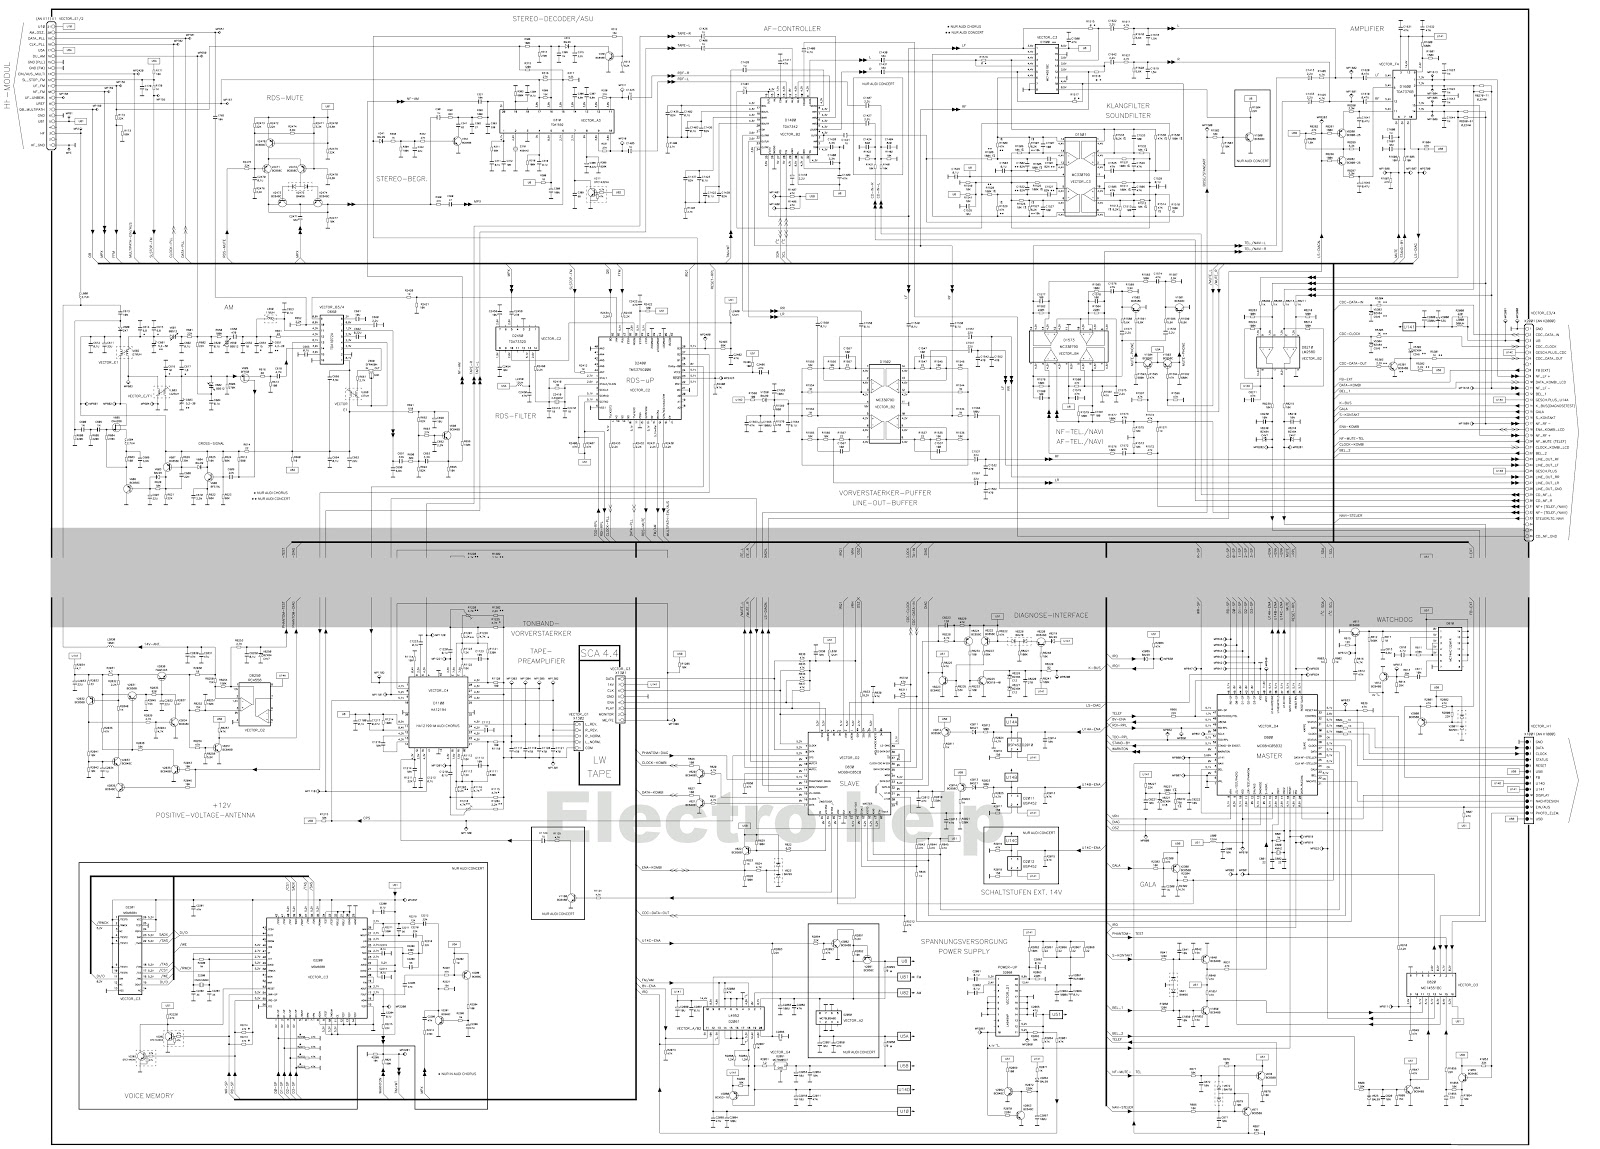 Blaupunkt Auto Radio Exploded View Circuit Diagram